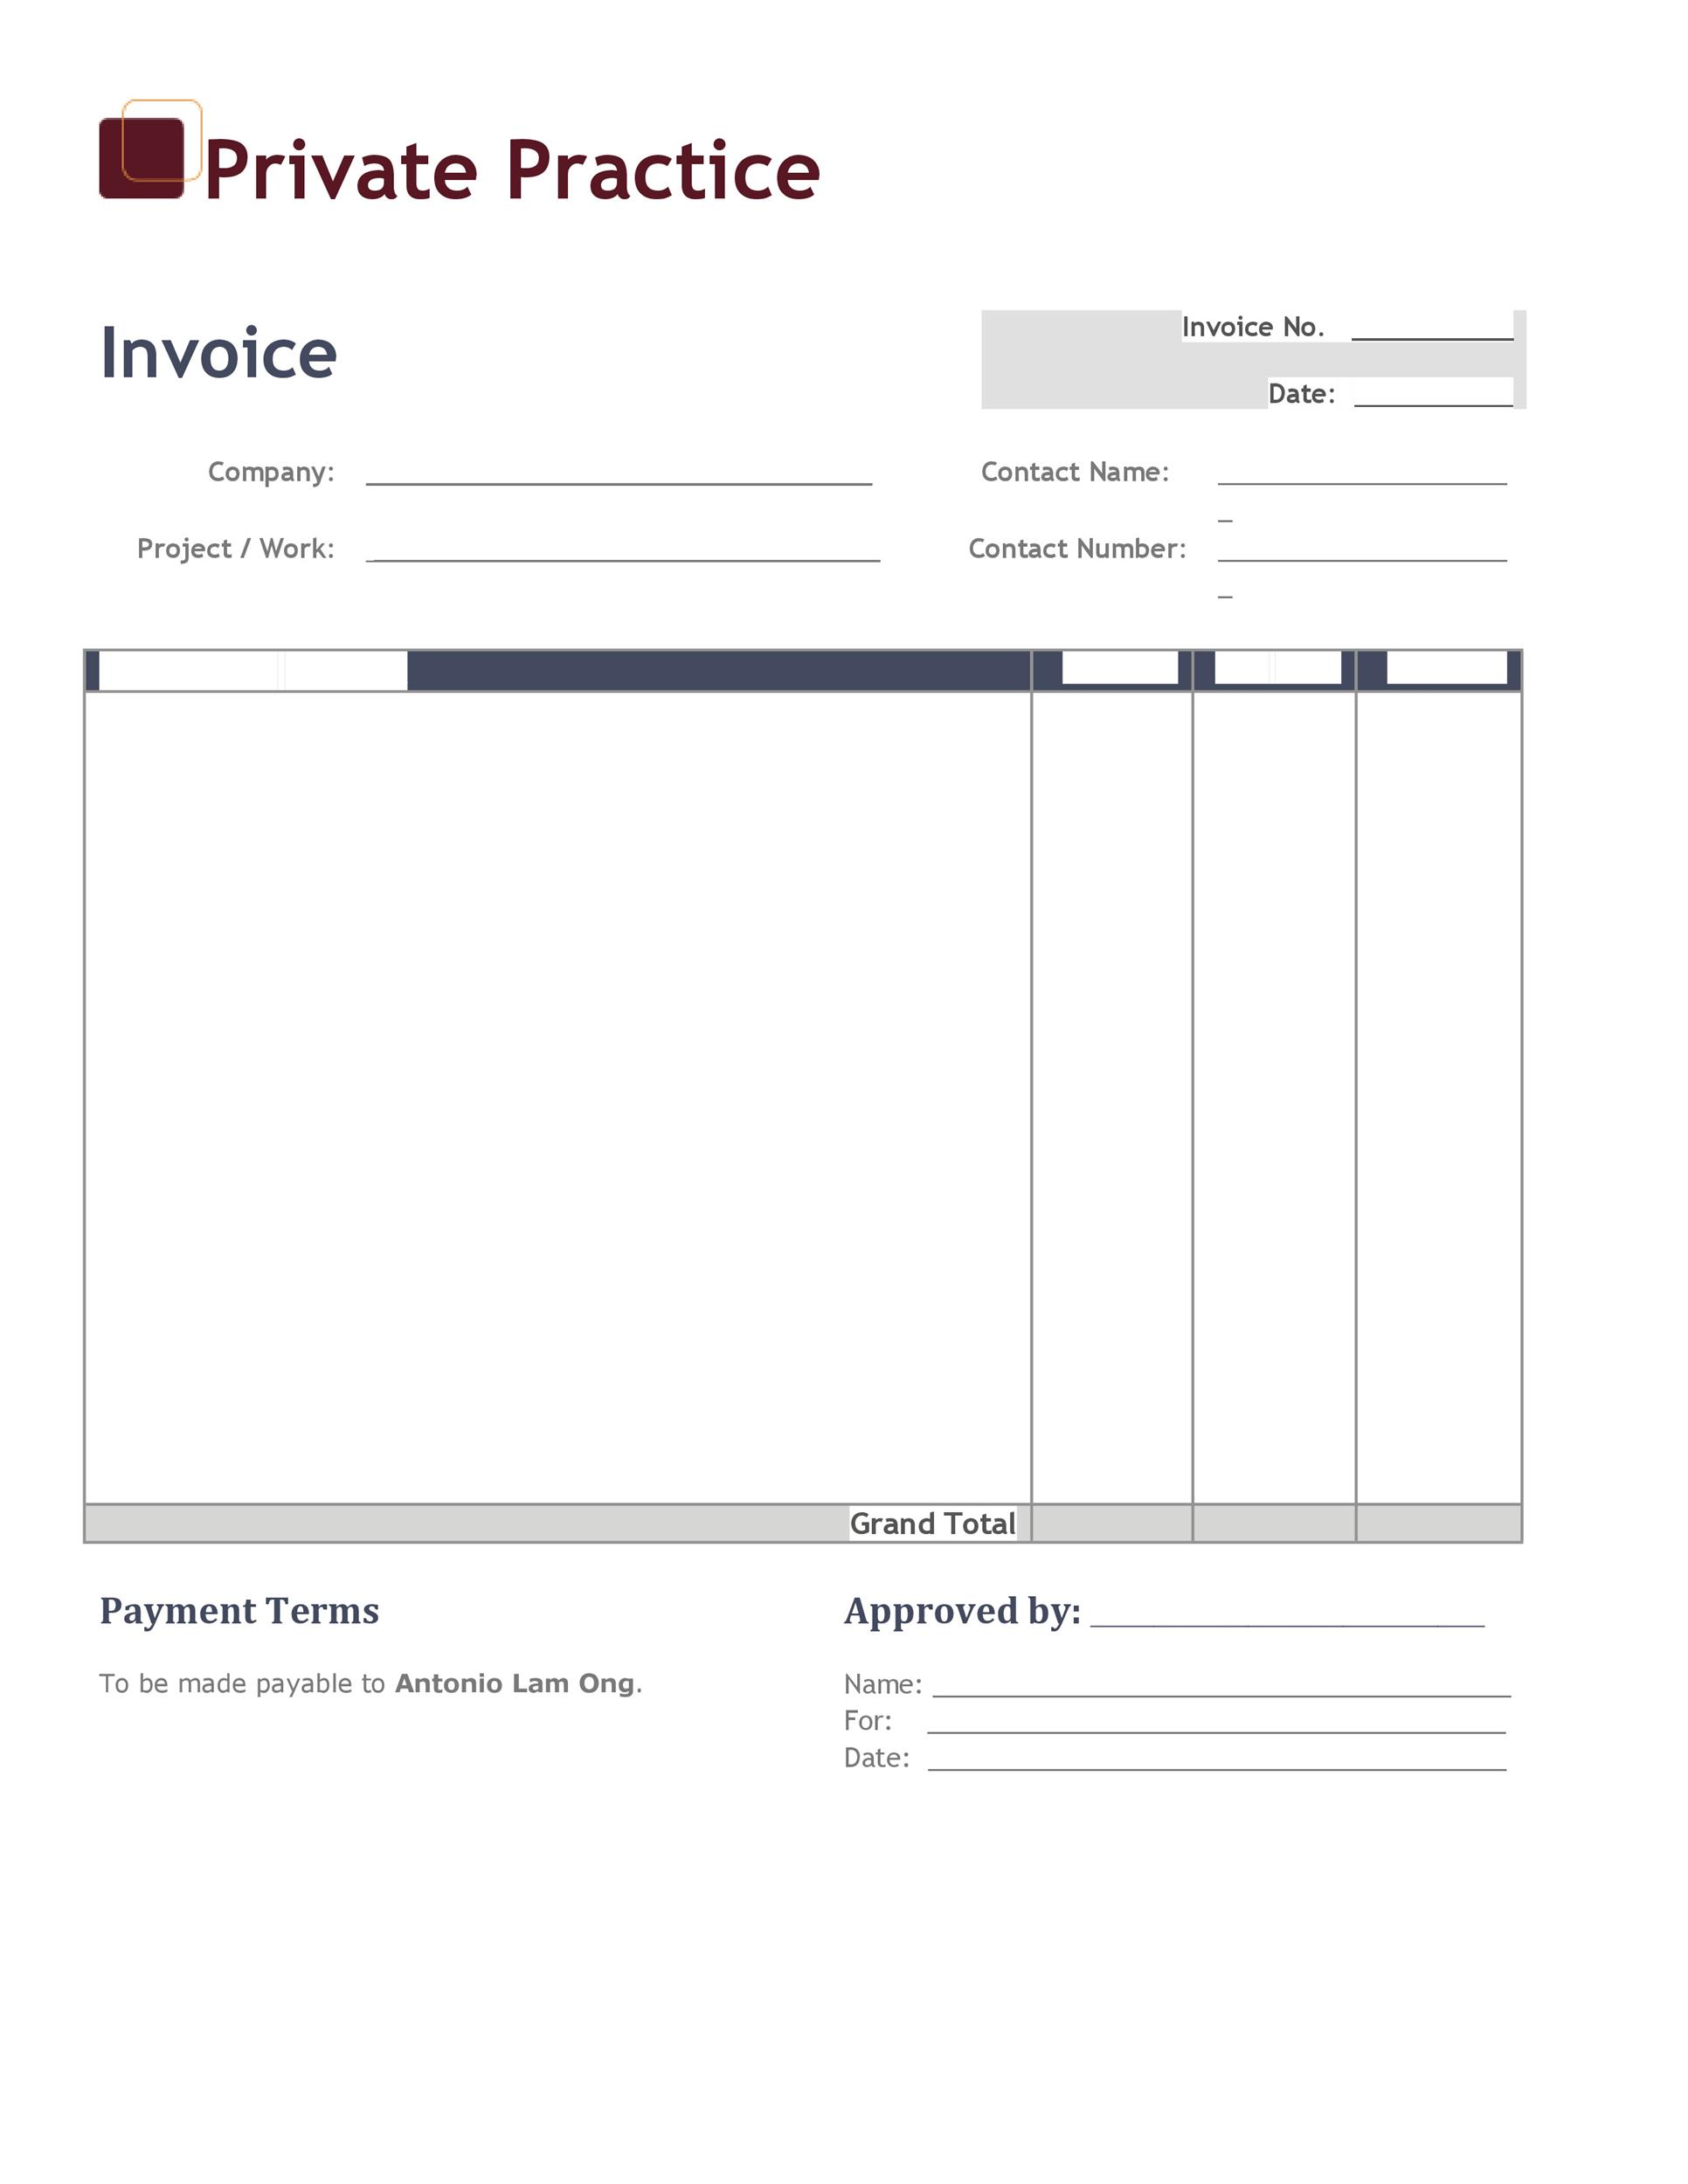 Invoice Templates Blank Commercial PDF Word Excel - Blank invoice word document for service business